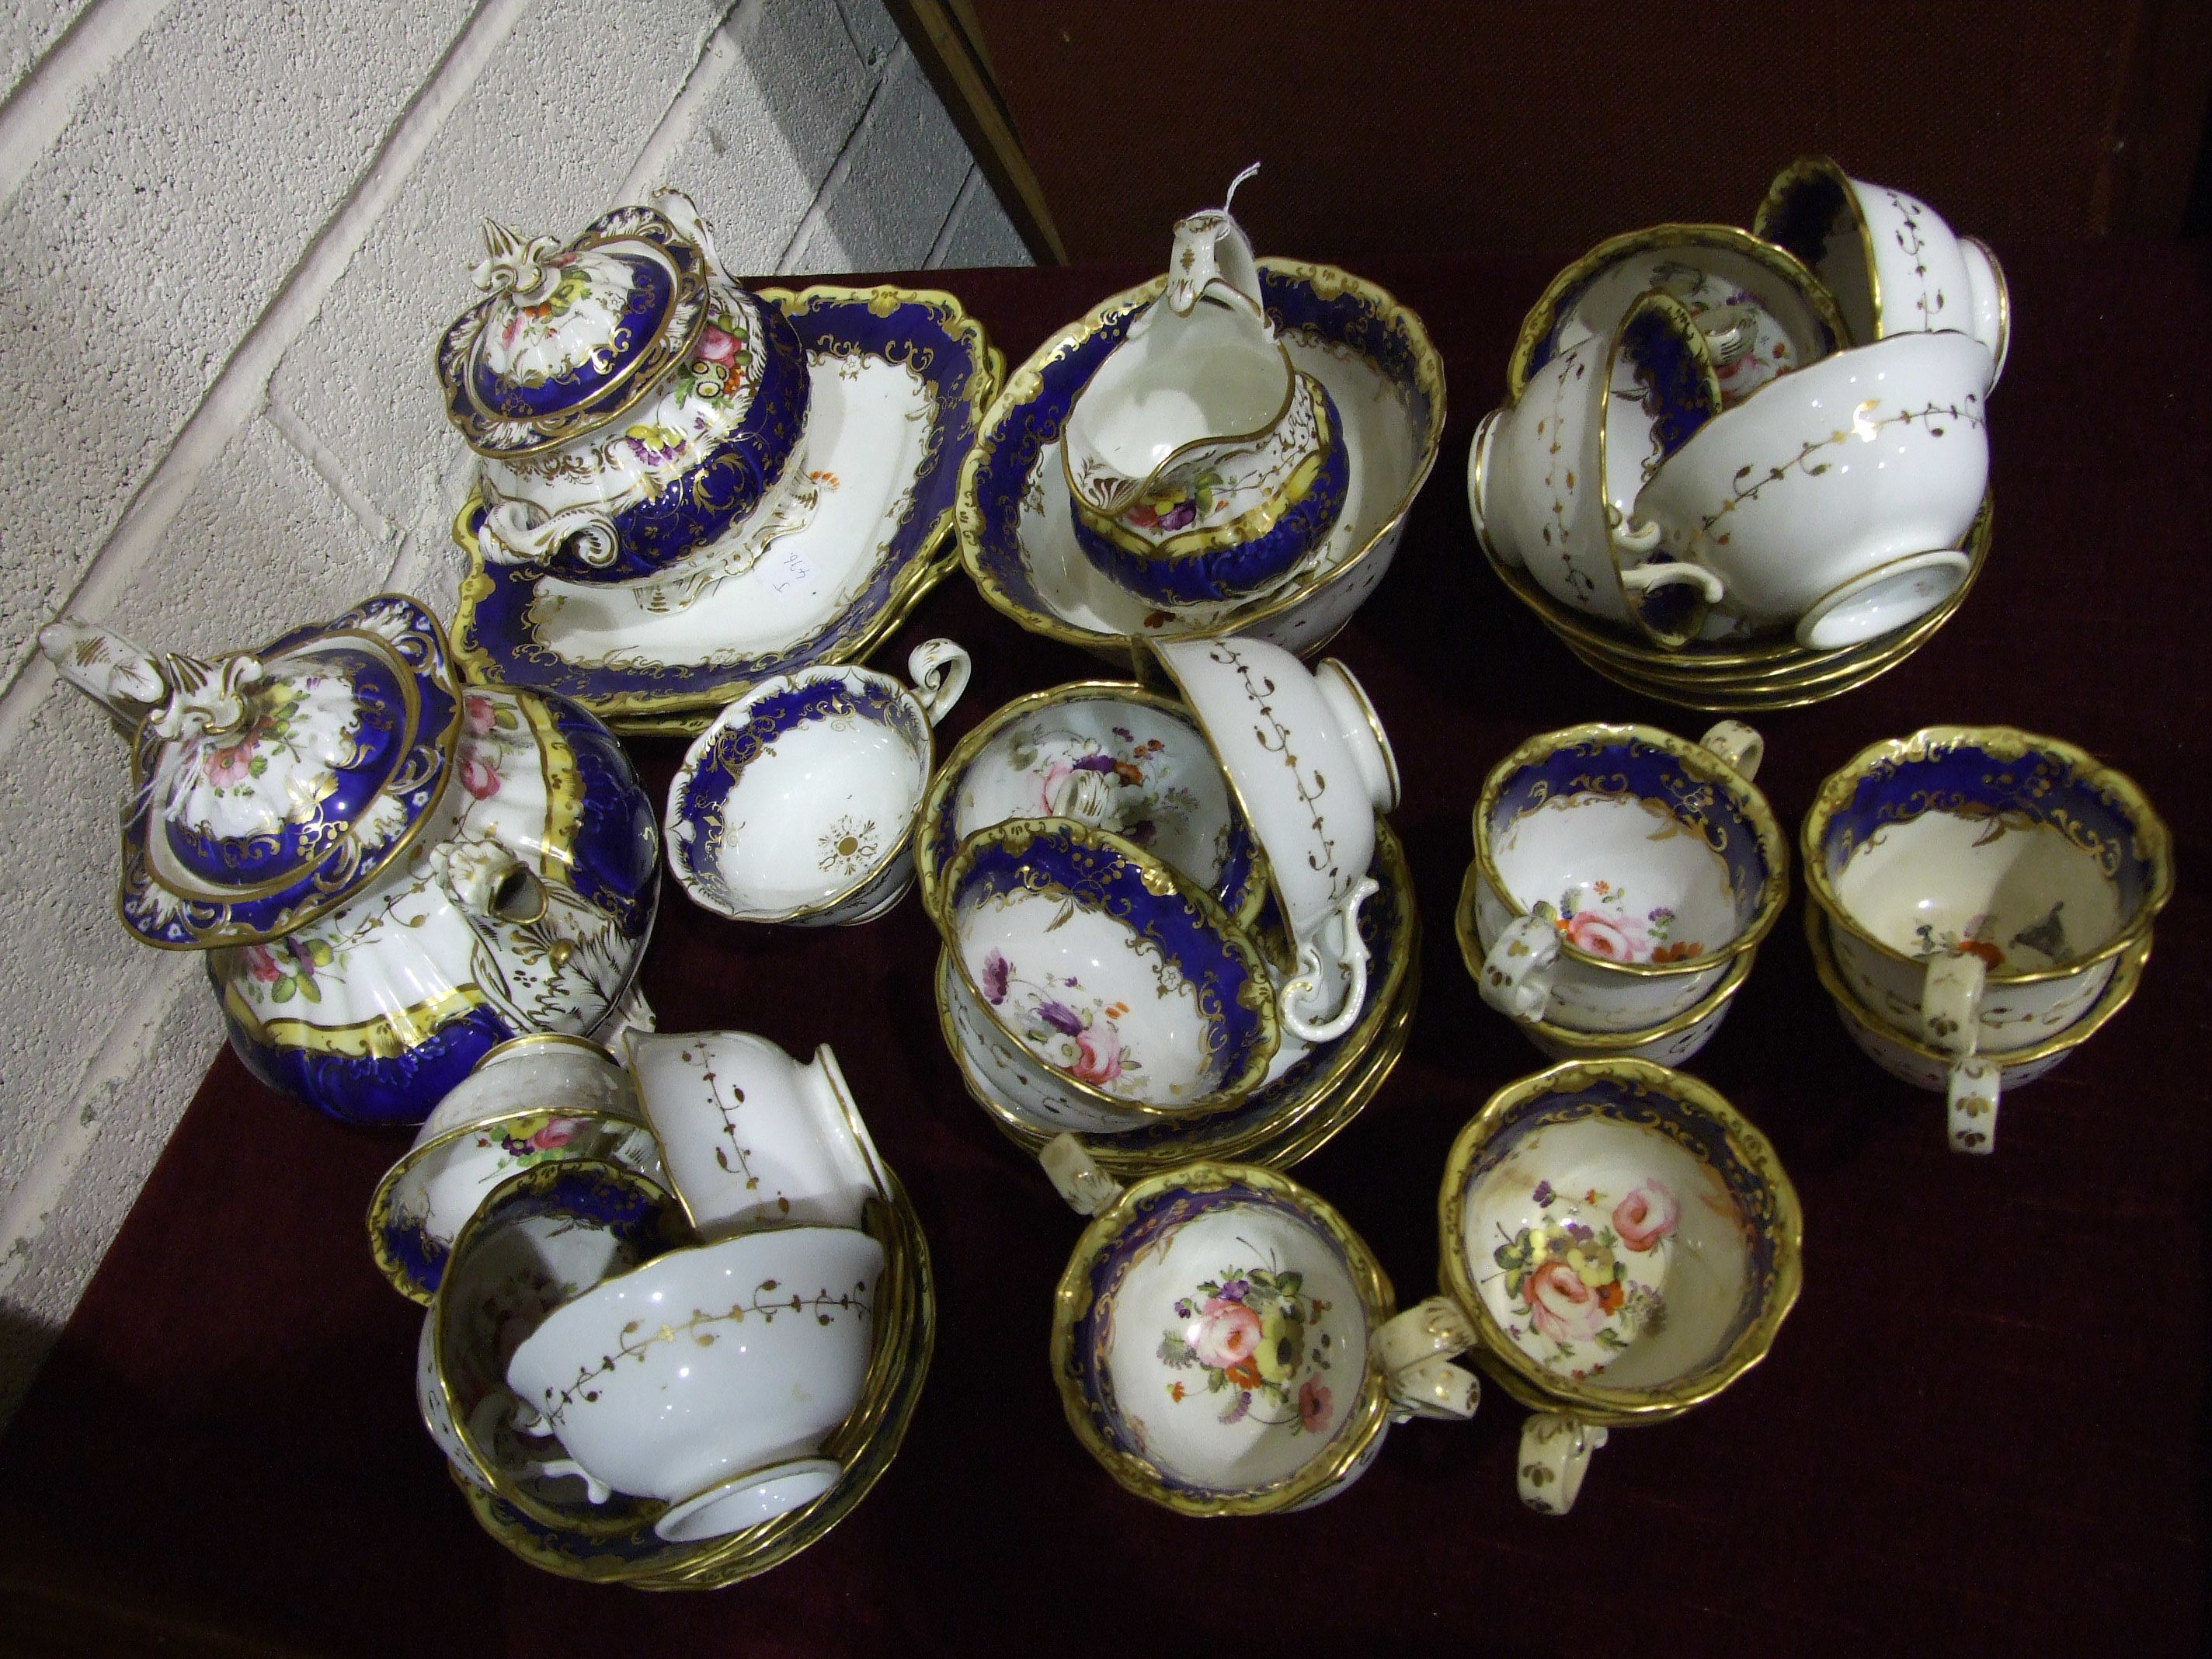 Lot 408 - A mid-19th century English porcelain part tea service decorated with flowers on a blue, yellow and